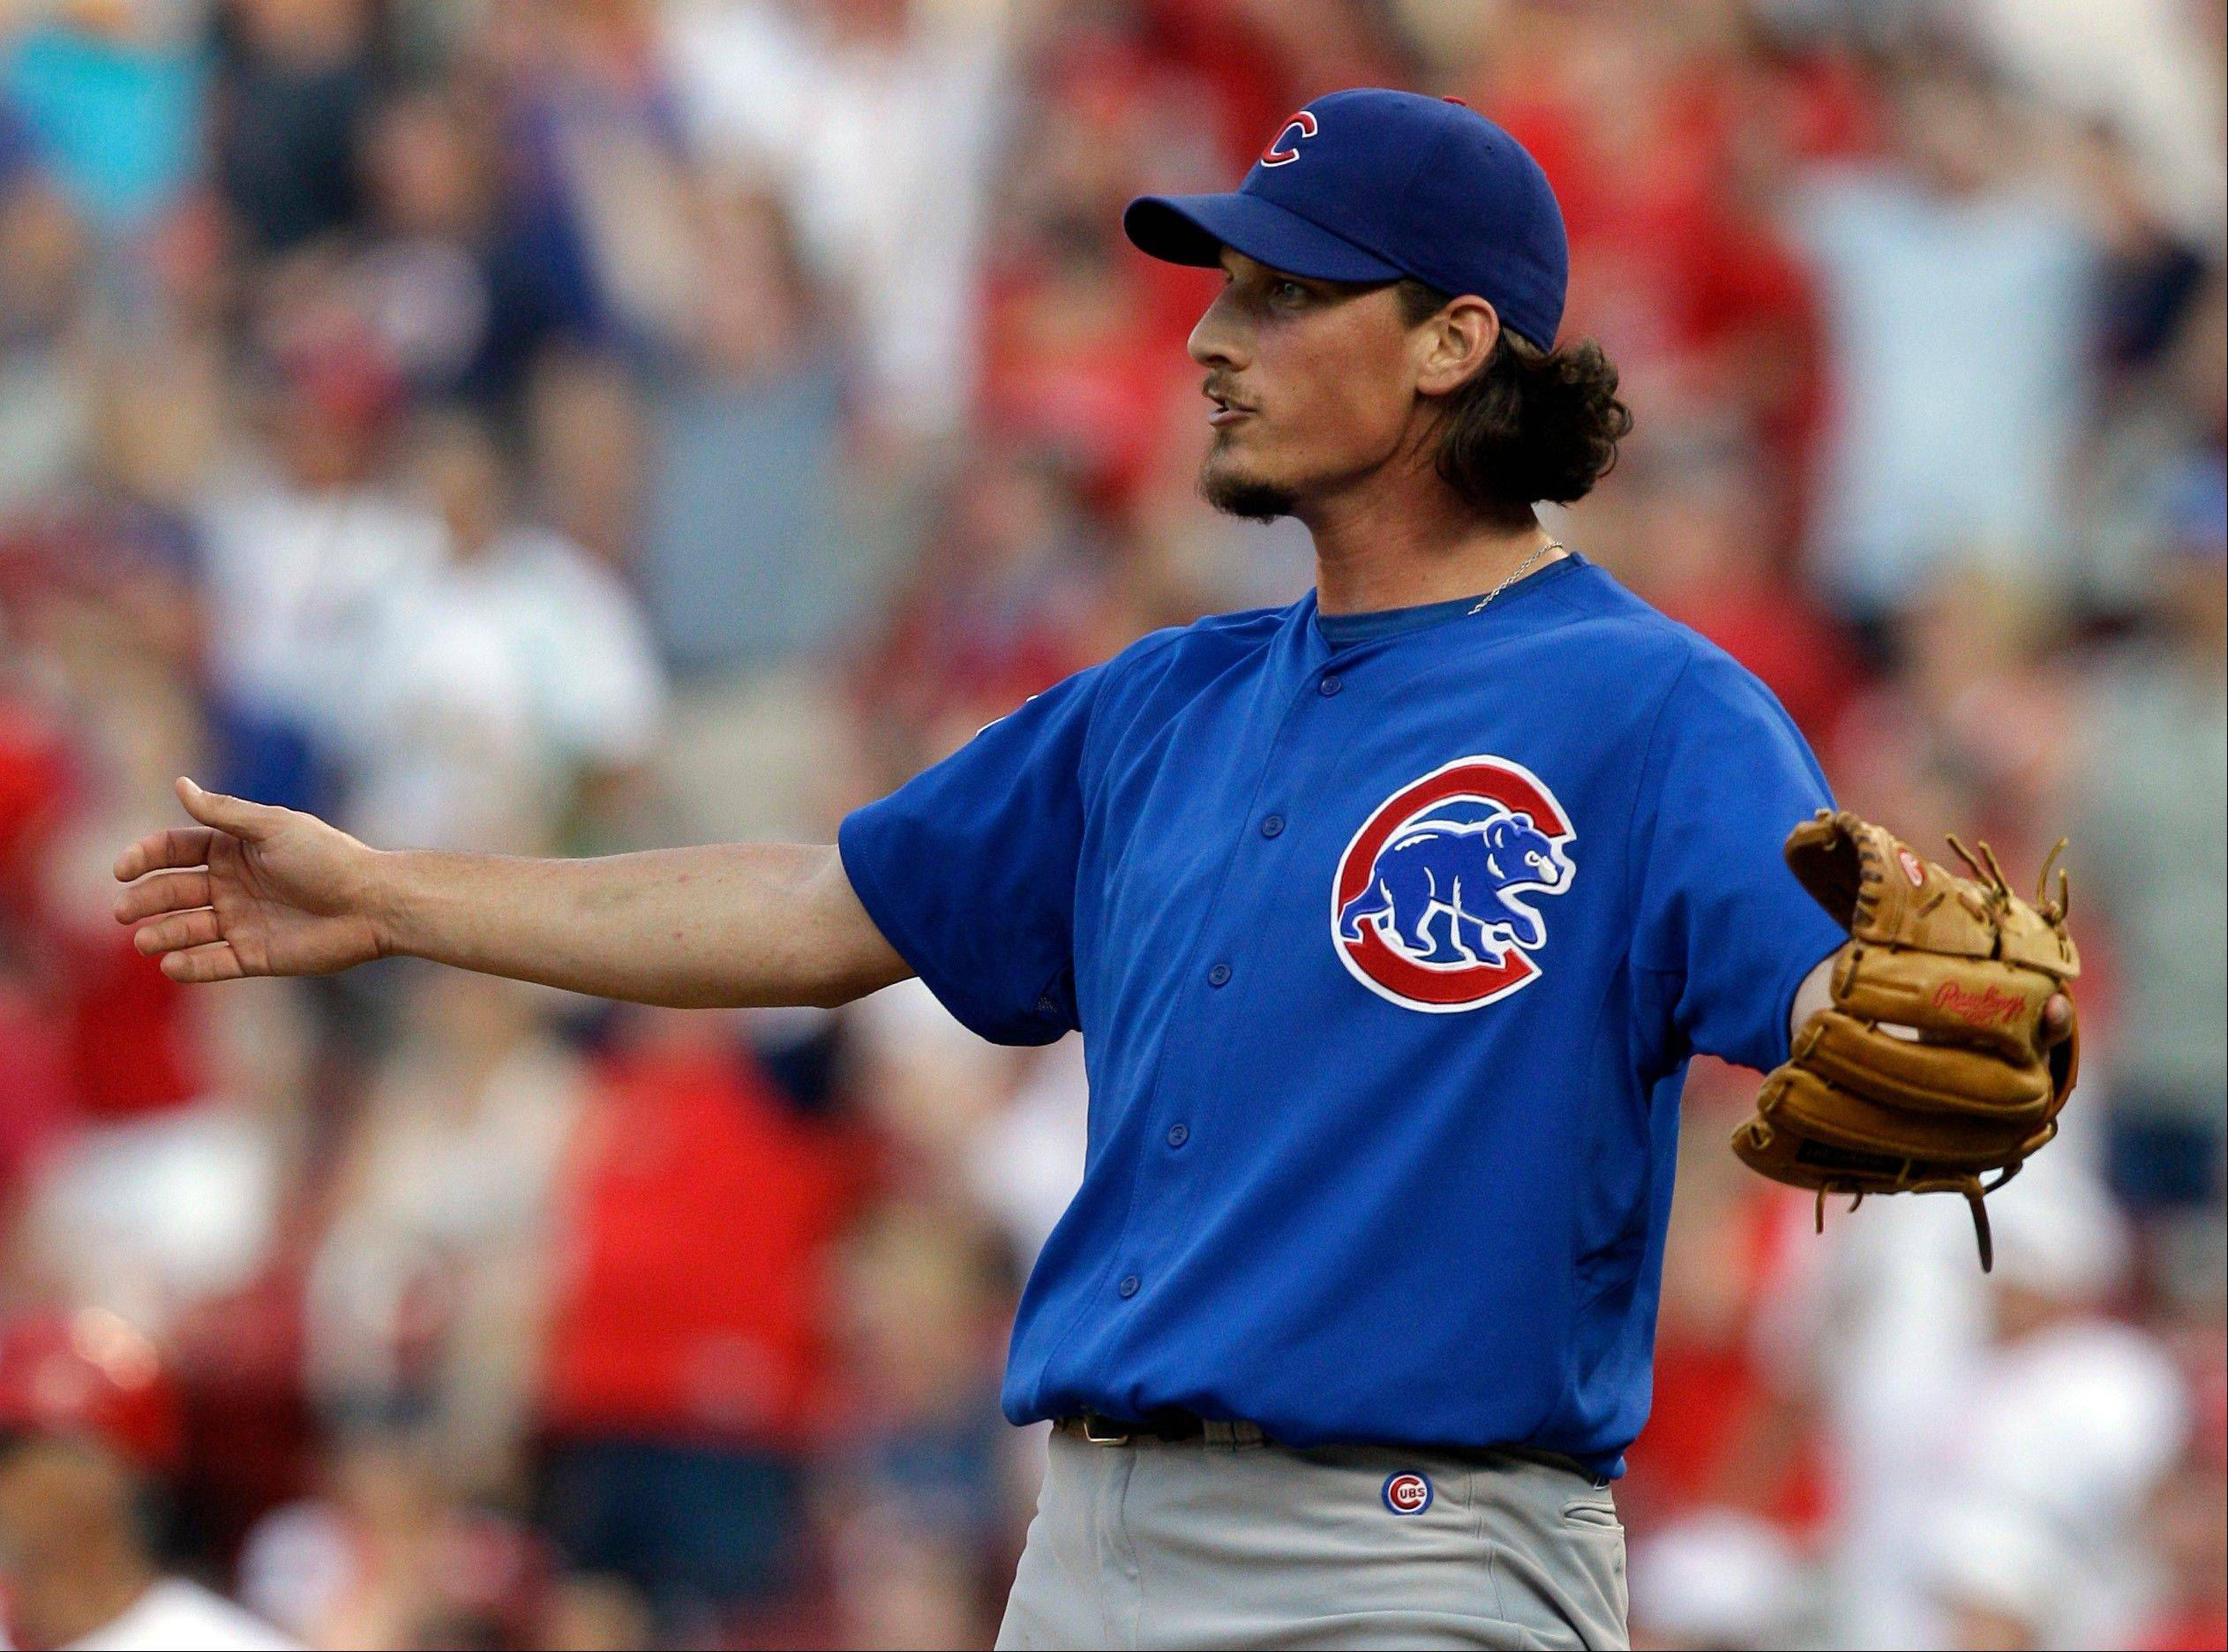 Is Samardzija on the verge of a breakthrough?